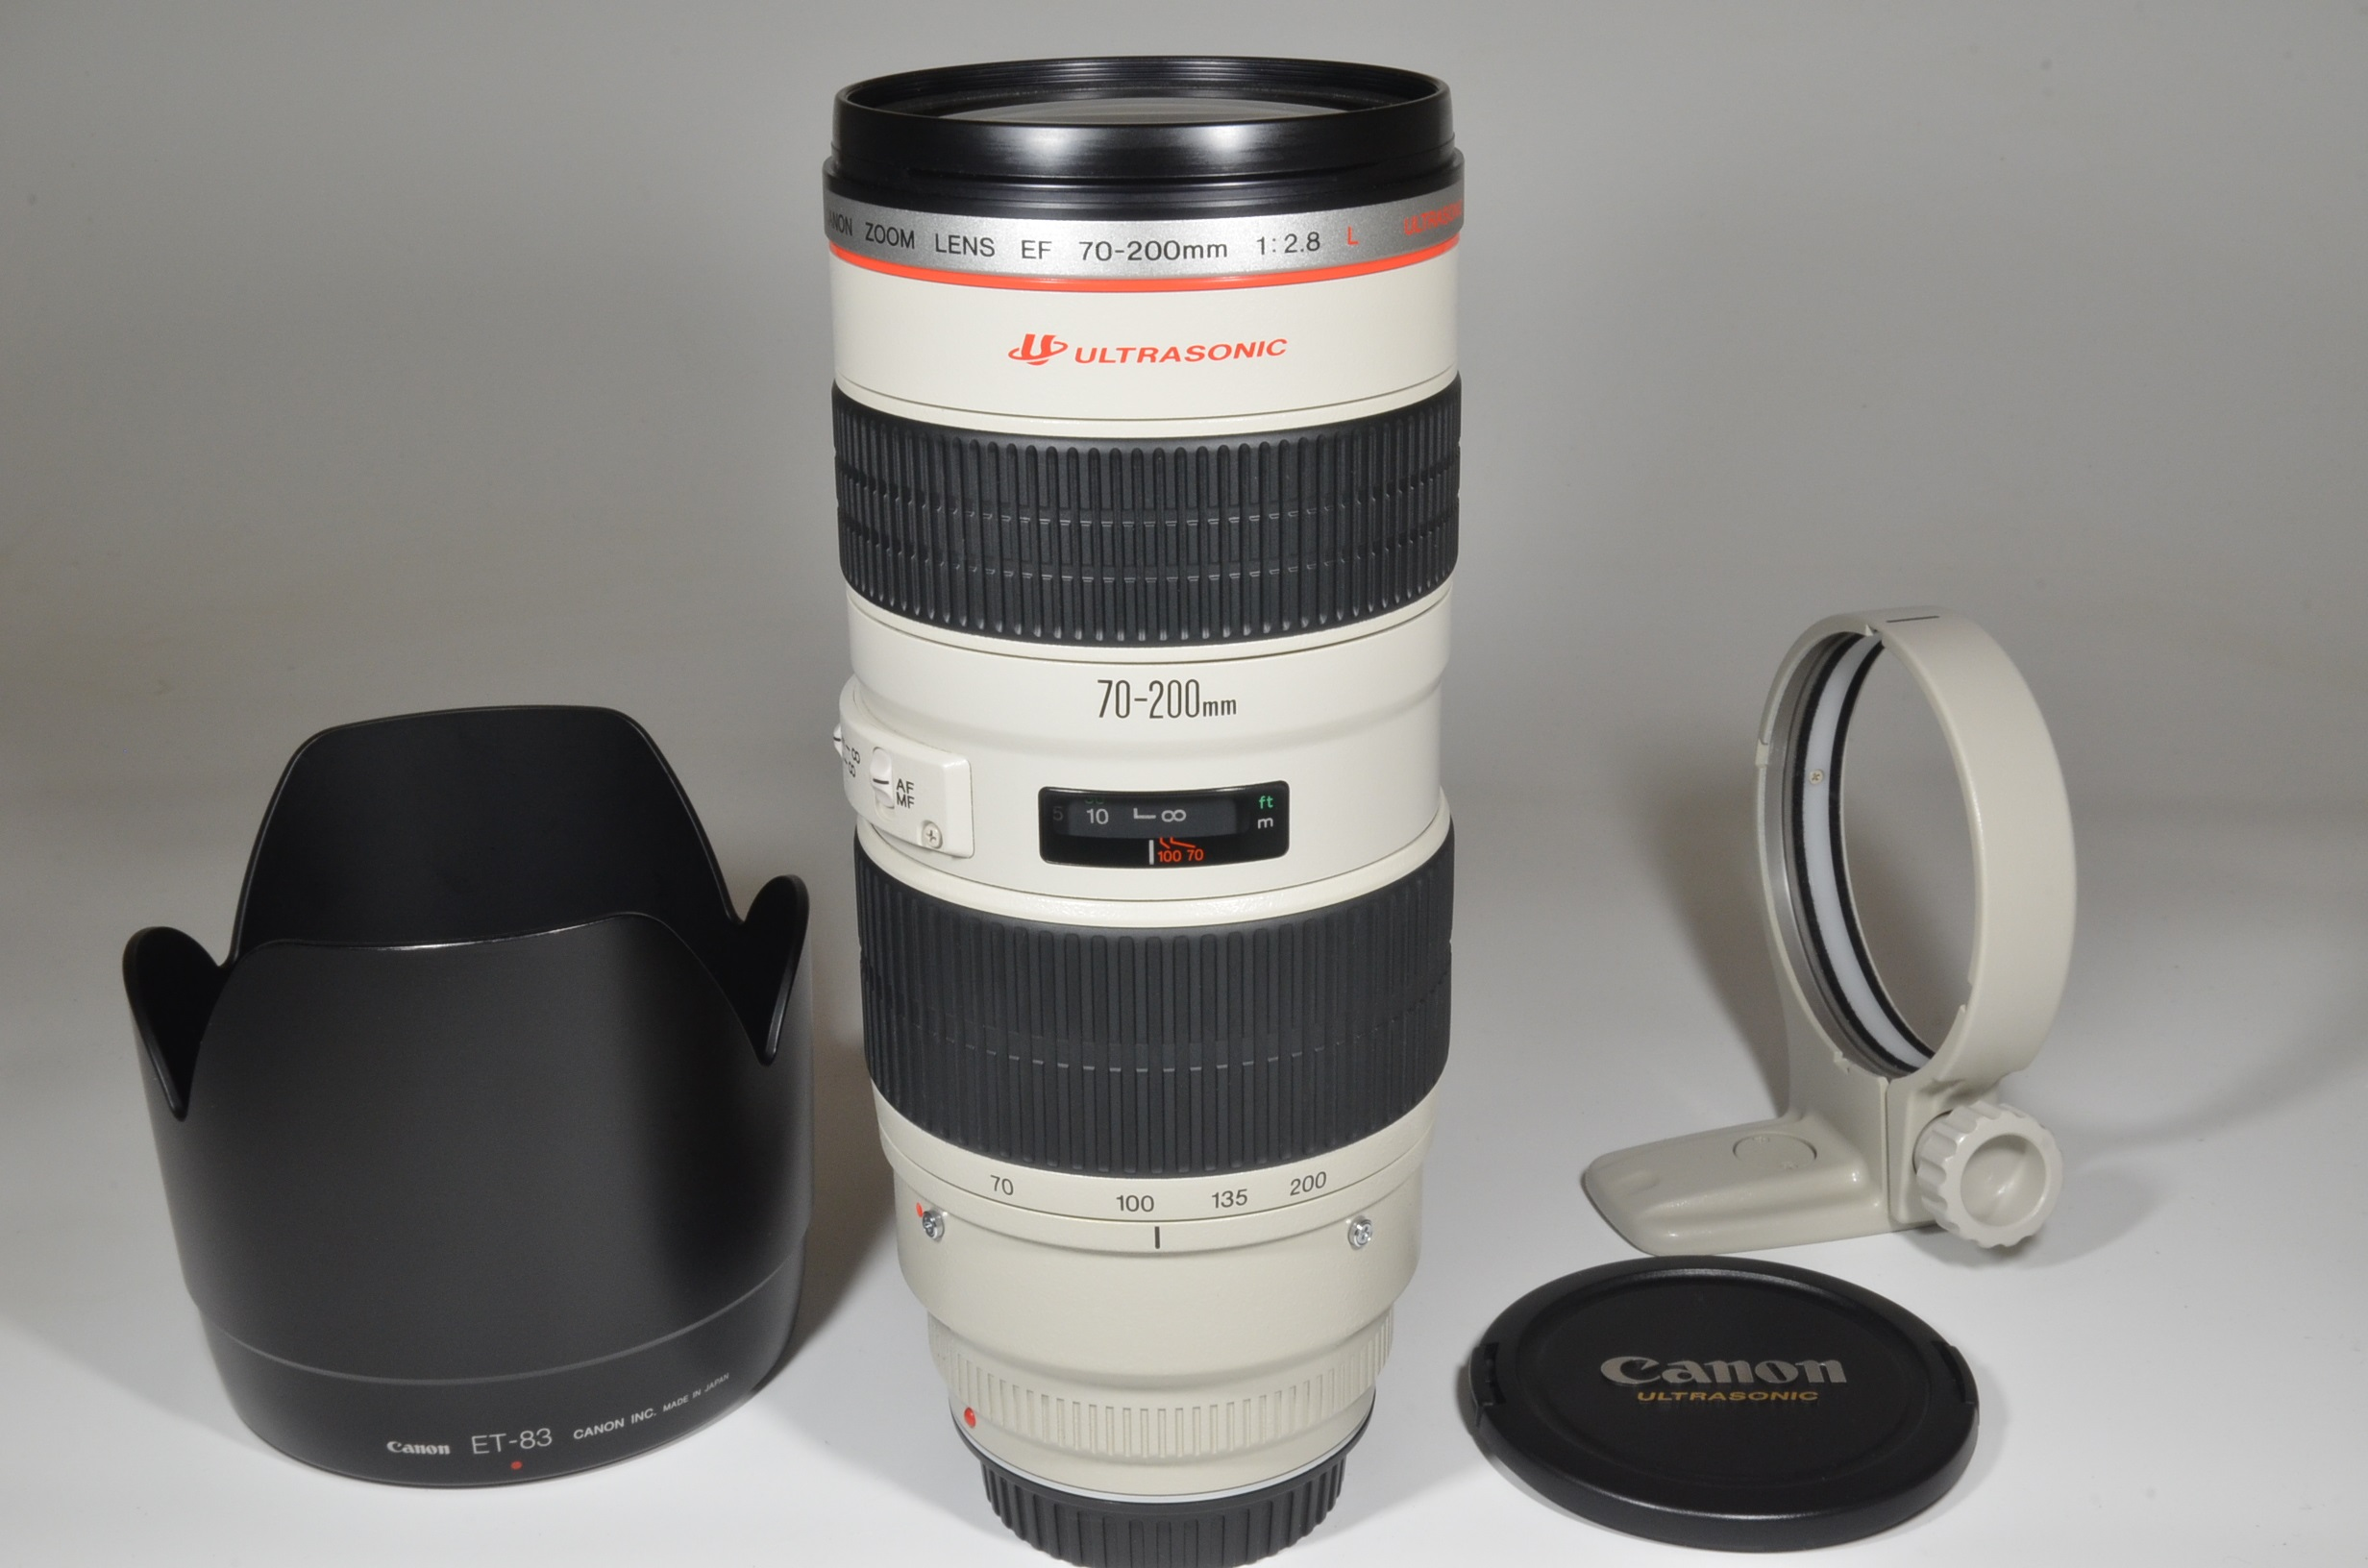 canon ef 70-200mm f/2.8 l usm ultrasonic lens